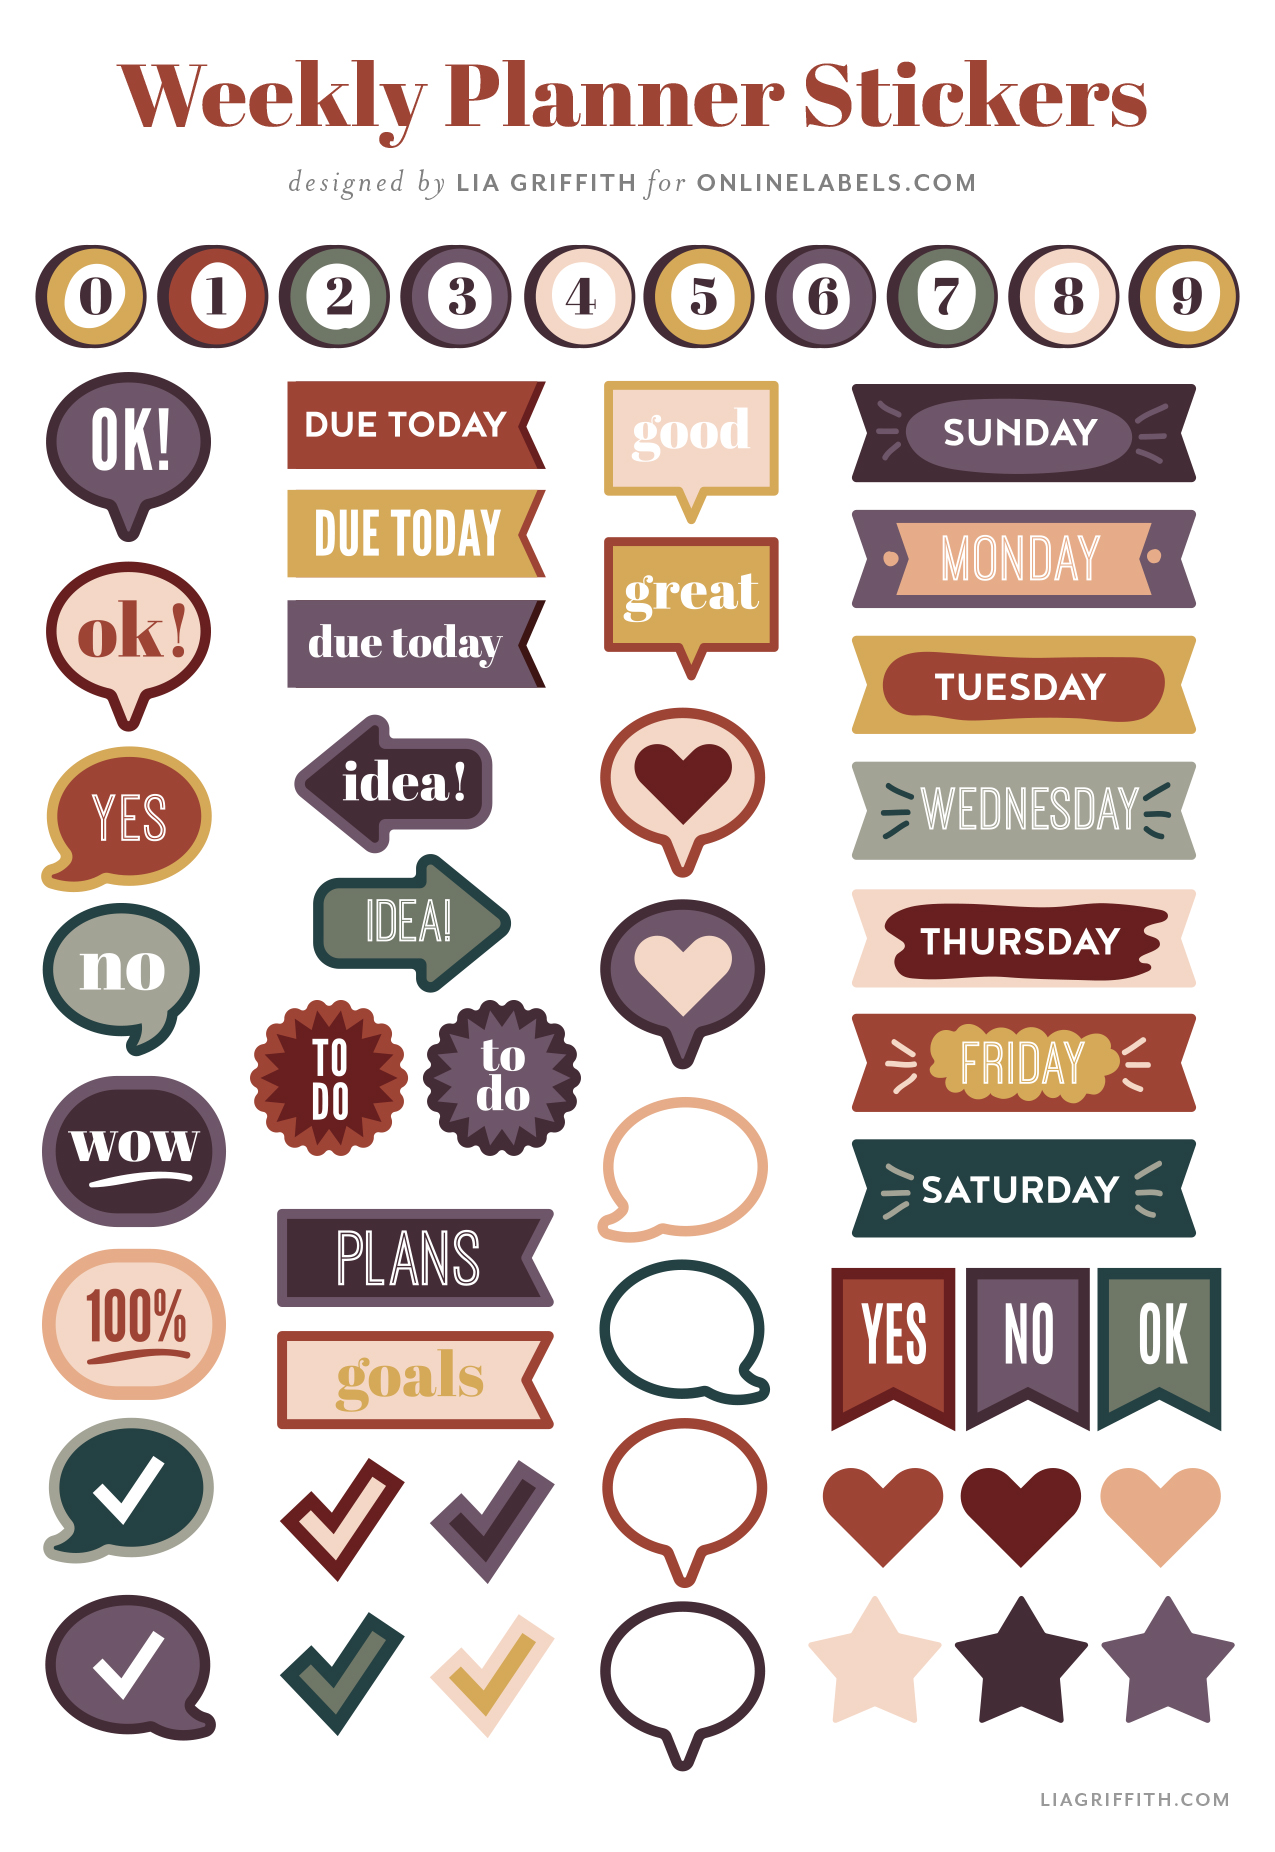 weekly planner stickers by Lia Griffith for Online Labels